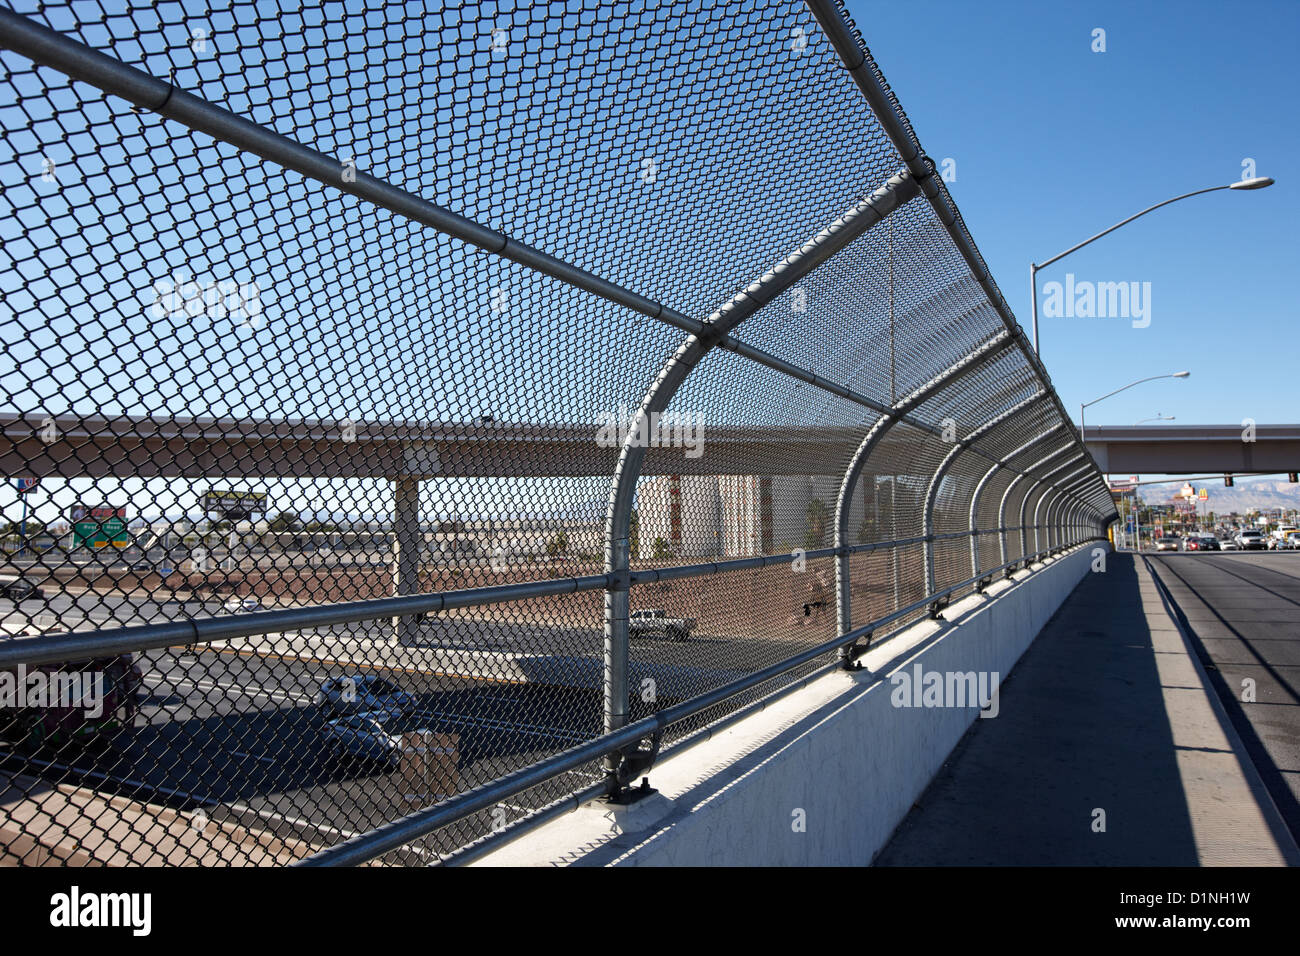 Chain Link Fence Stock Photos & Chain Link Fence Stock Images - Alamy